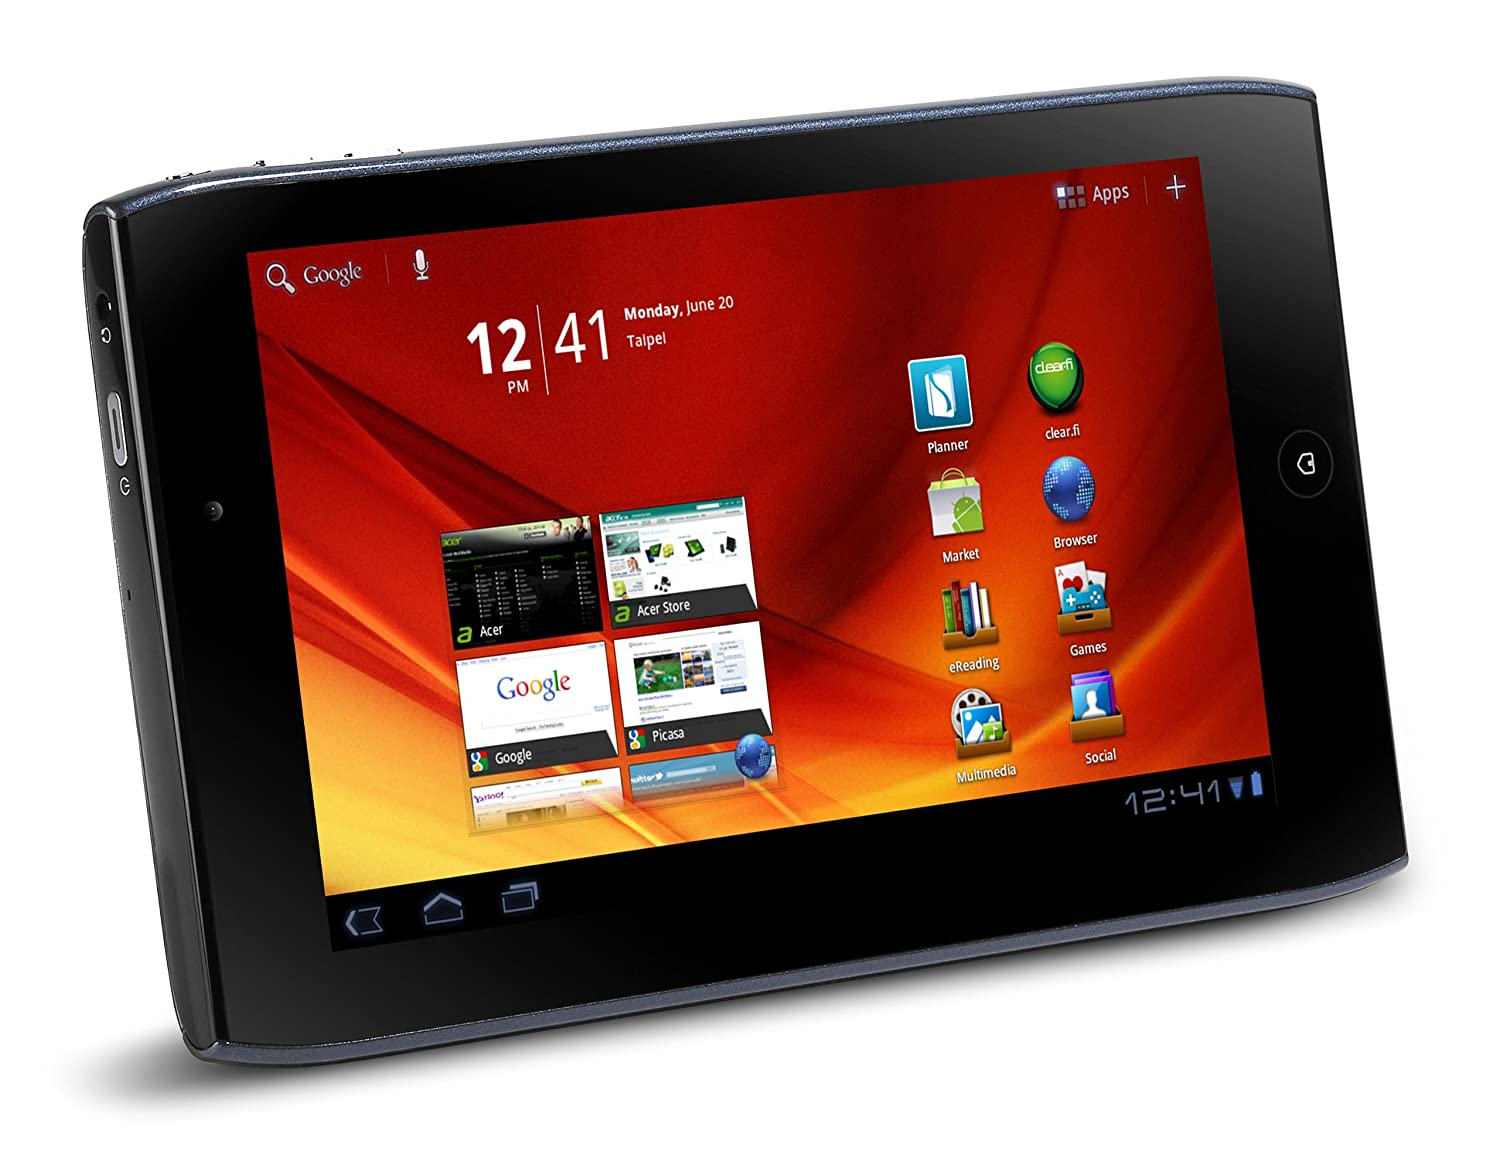 Acer Iconia A100 deals